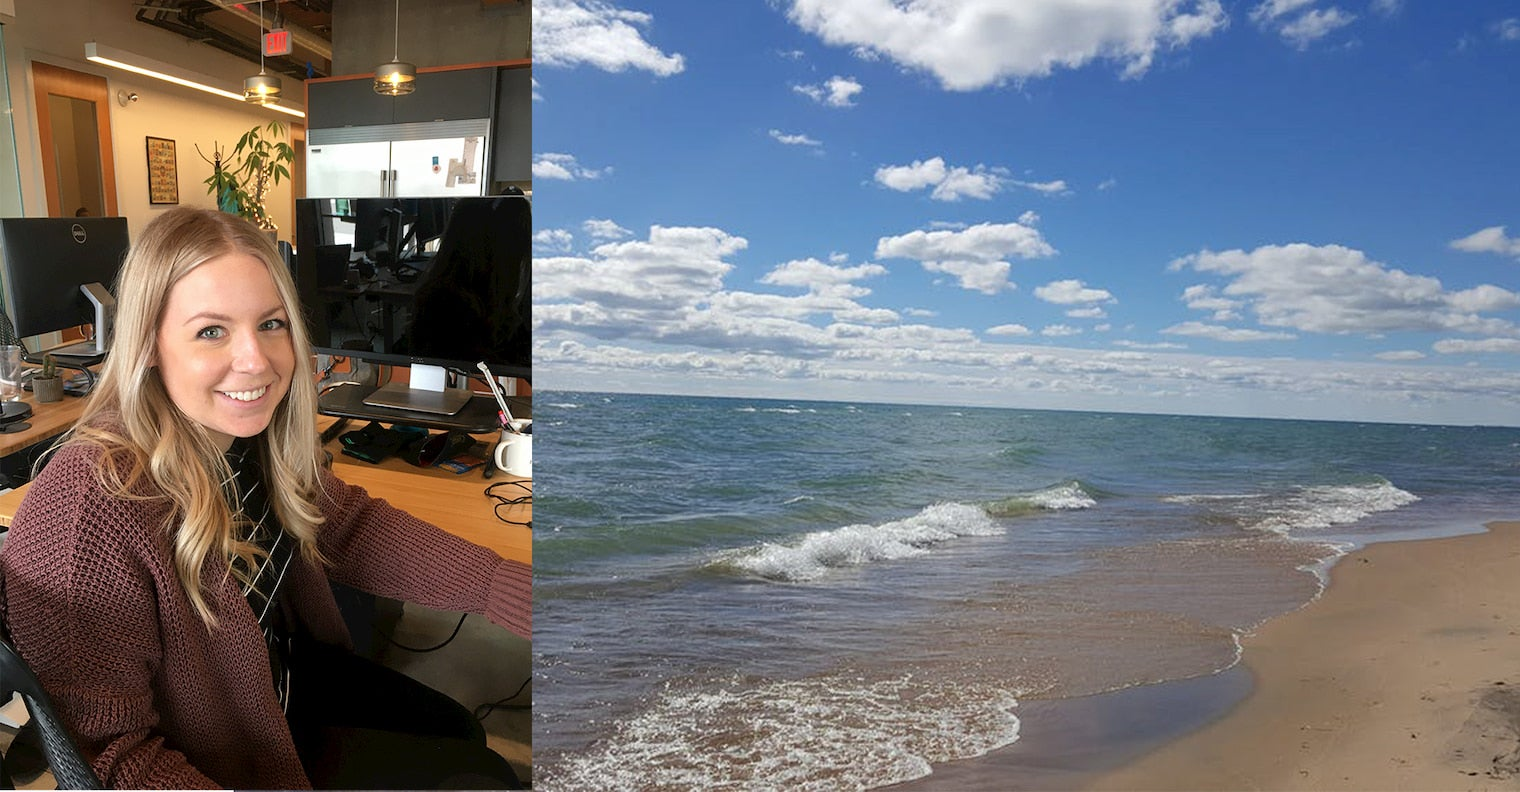 On the right women sitting at her desk in front of a computer screen, on the left, beach with blue sky and cumulous clouds.